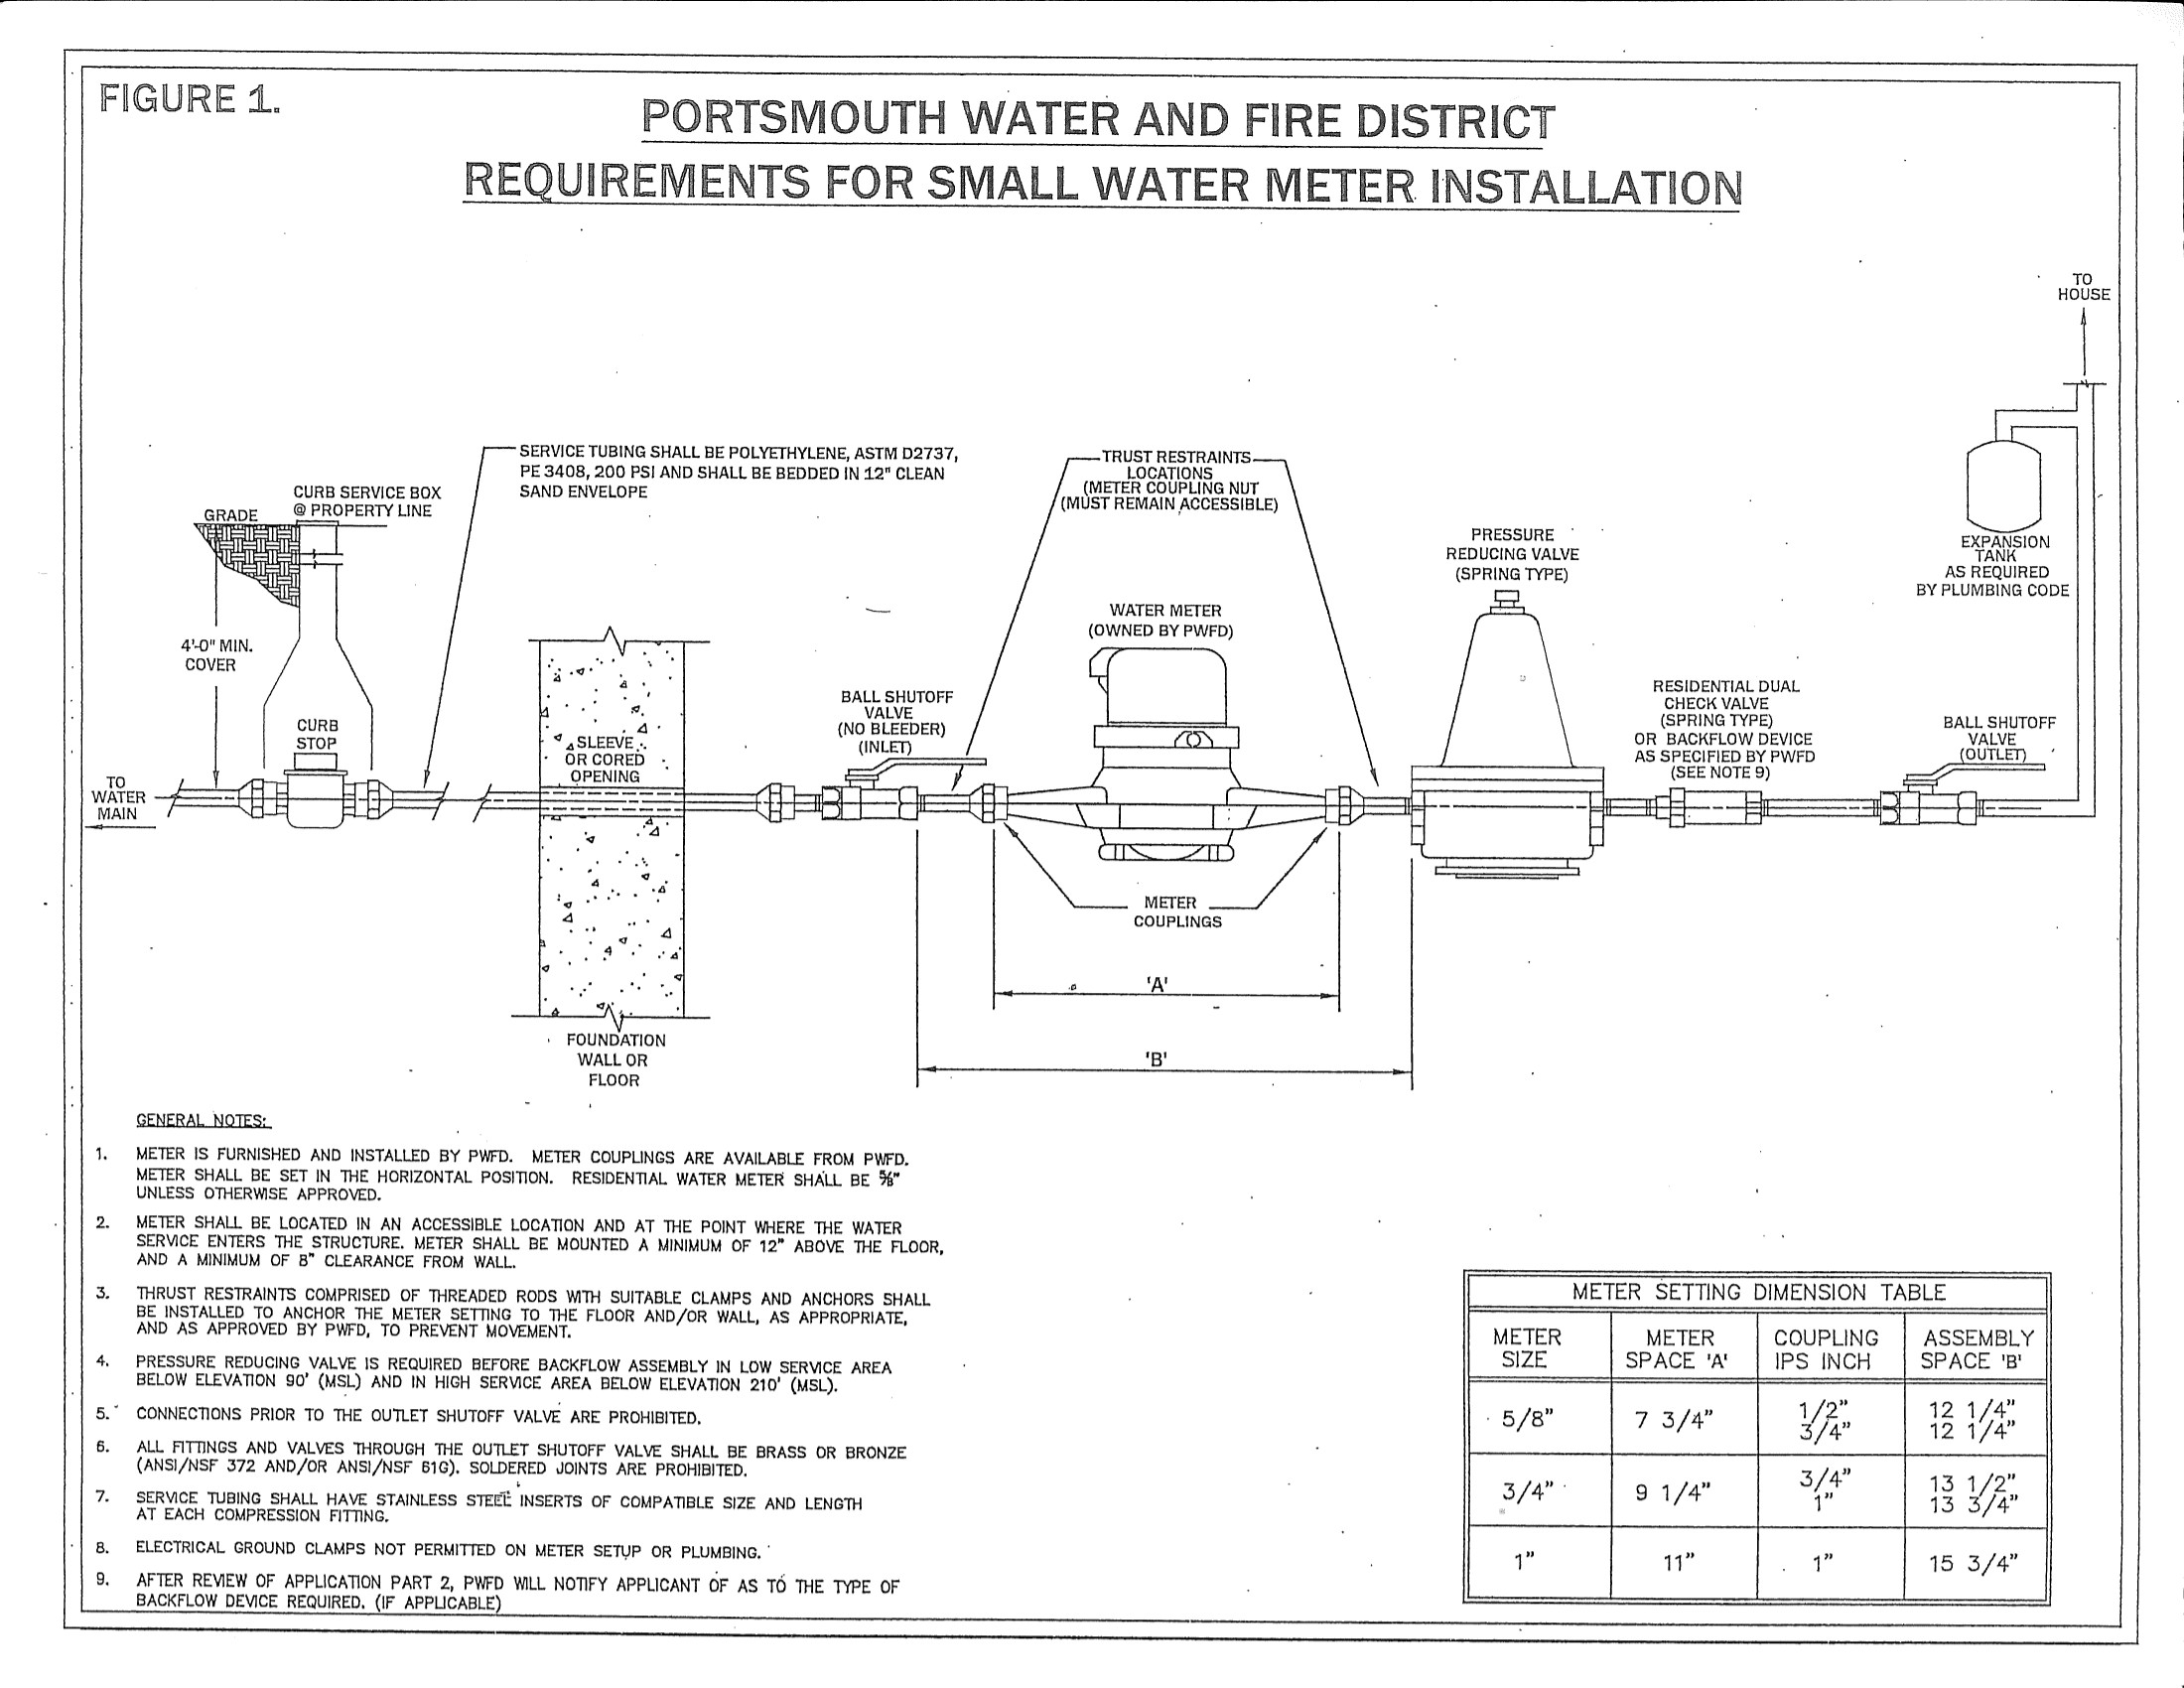 Small Water Meter Installation Portsmouth Water And Fire District Bypass Water  Meter Installation Diagram Water Meter Installation Diagram